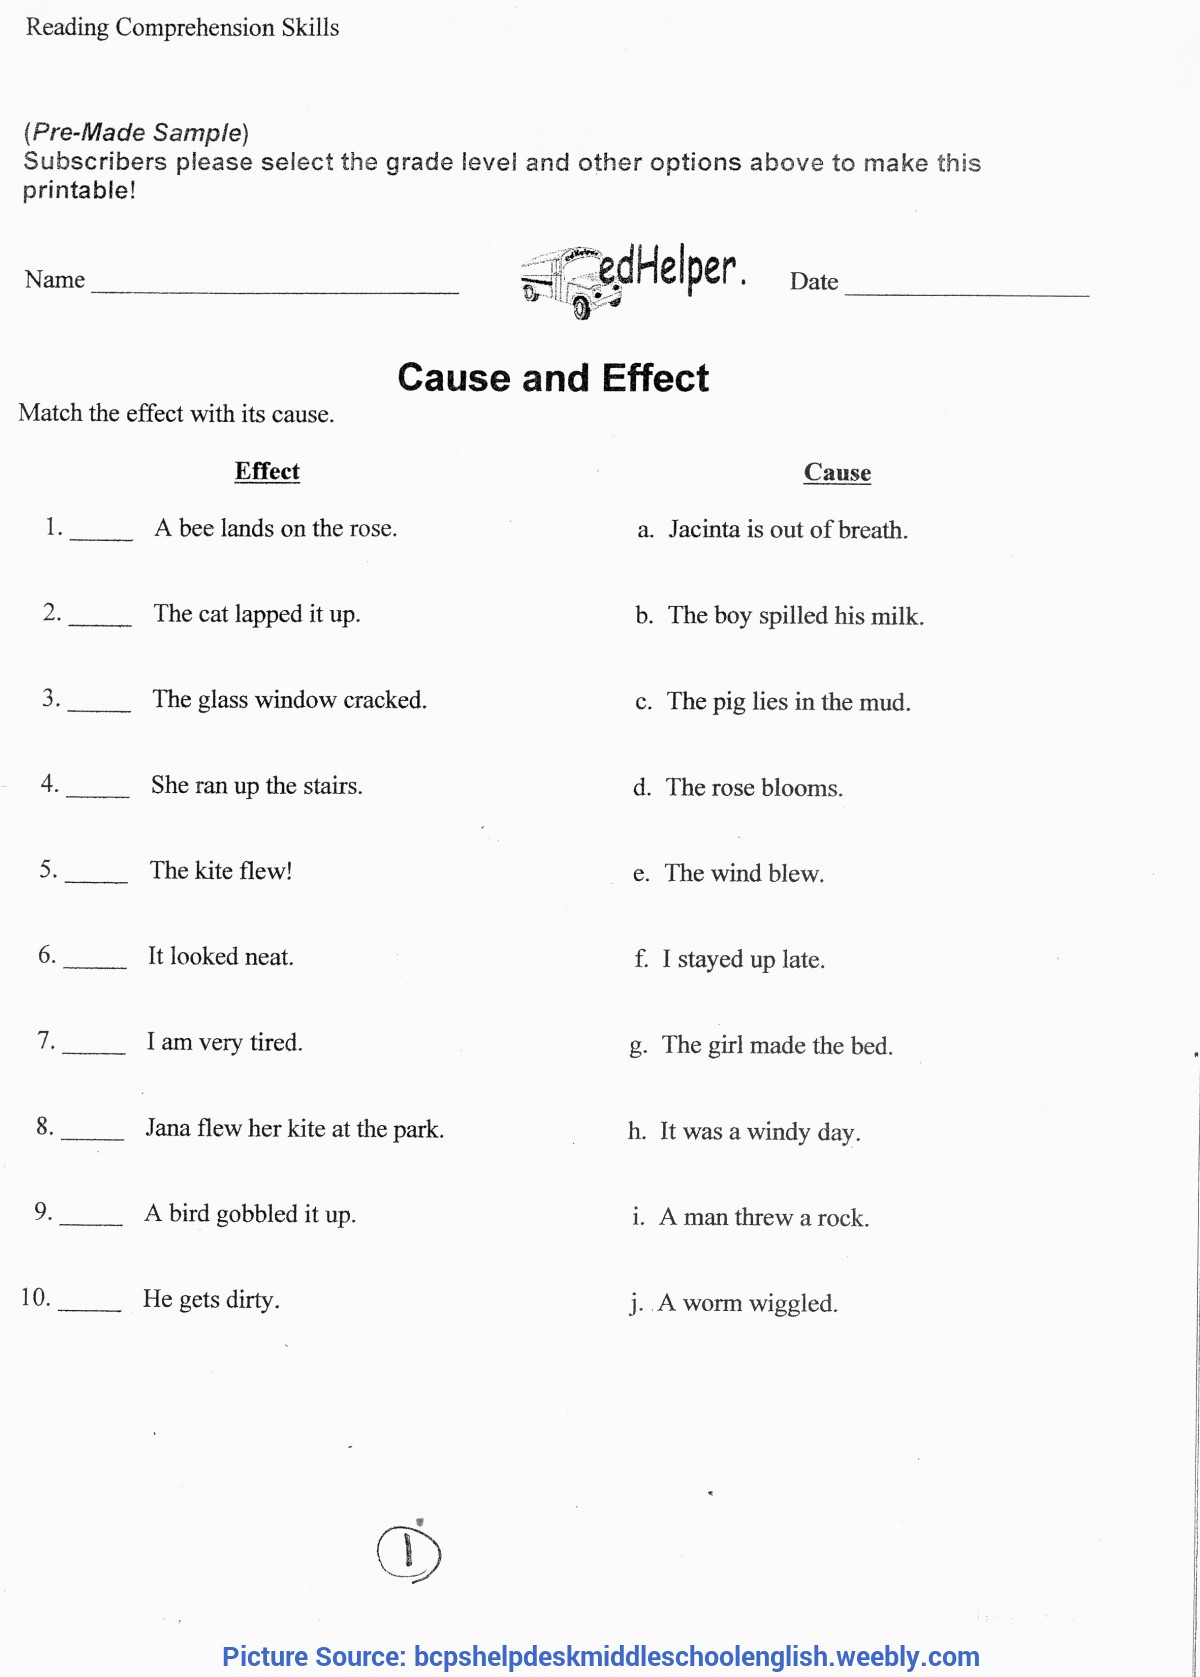 Regular Lesson Plan In English Grade 6 6Th Grade Lessons - Middle School Language Arts